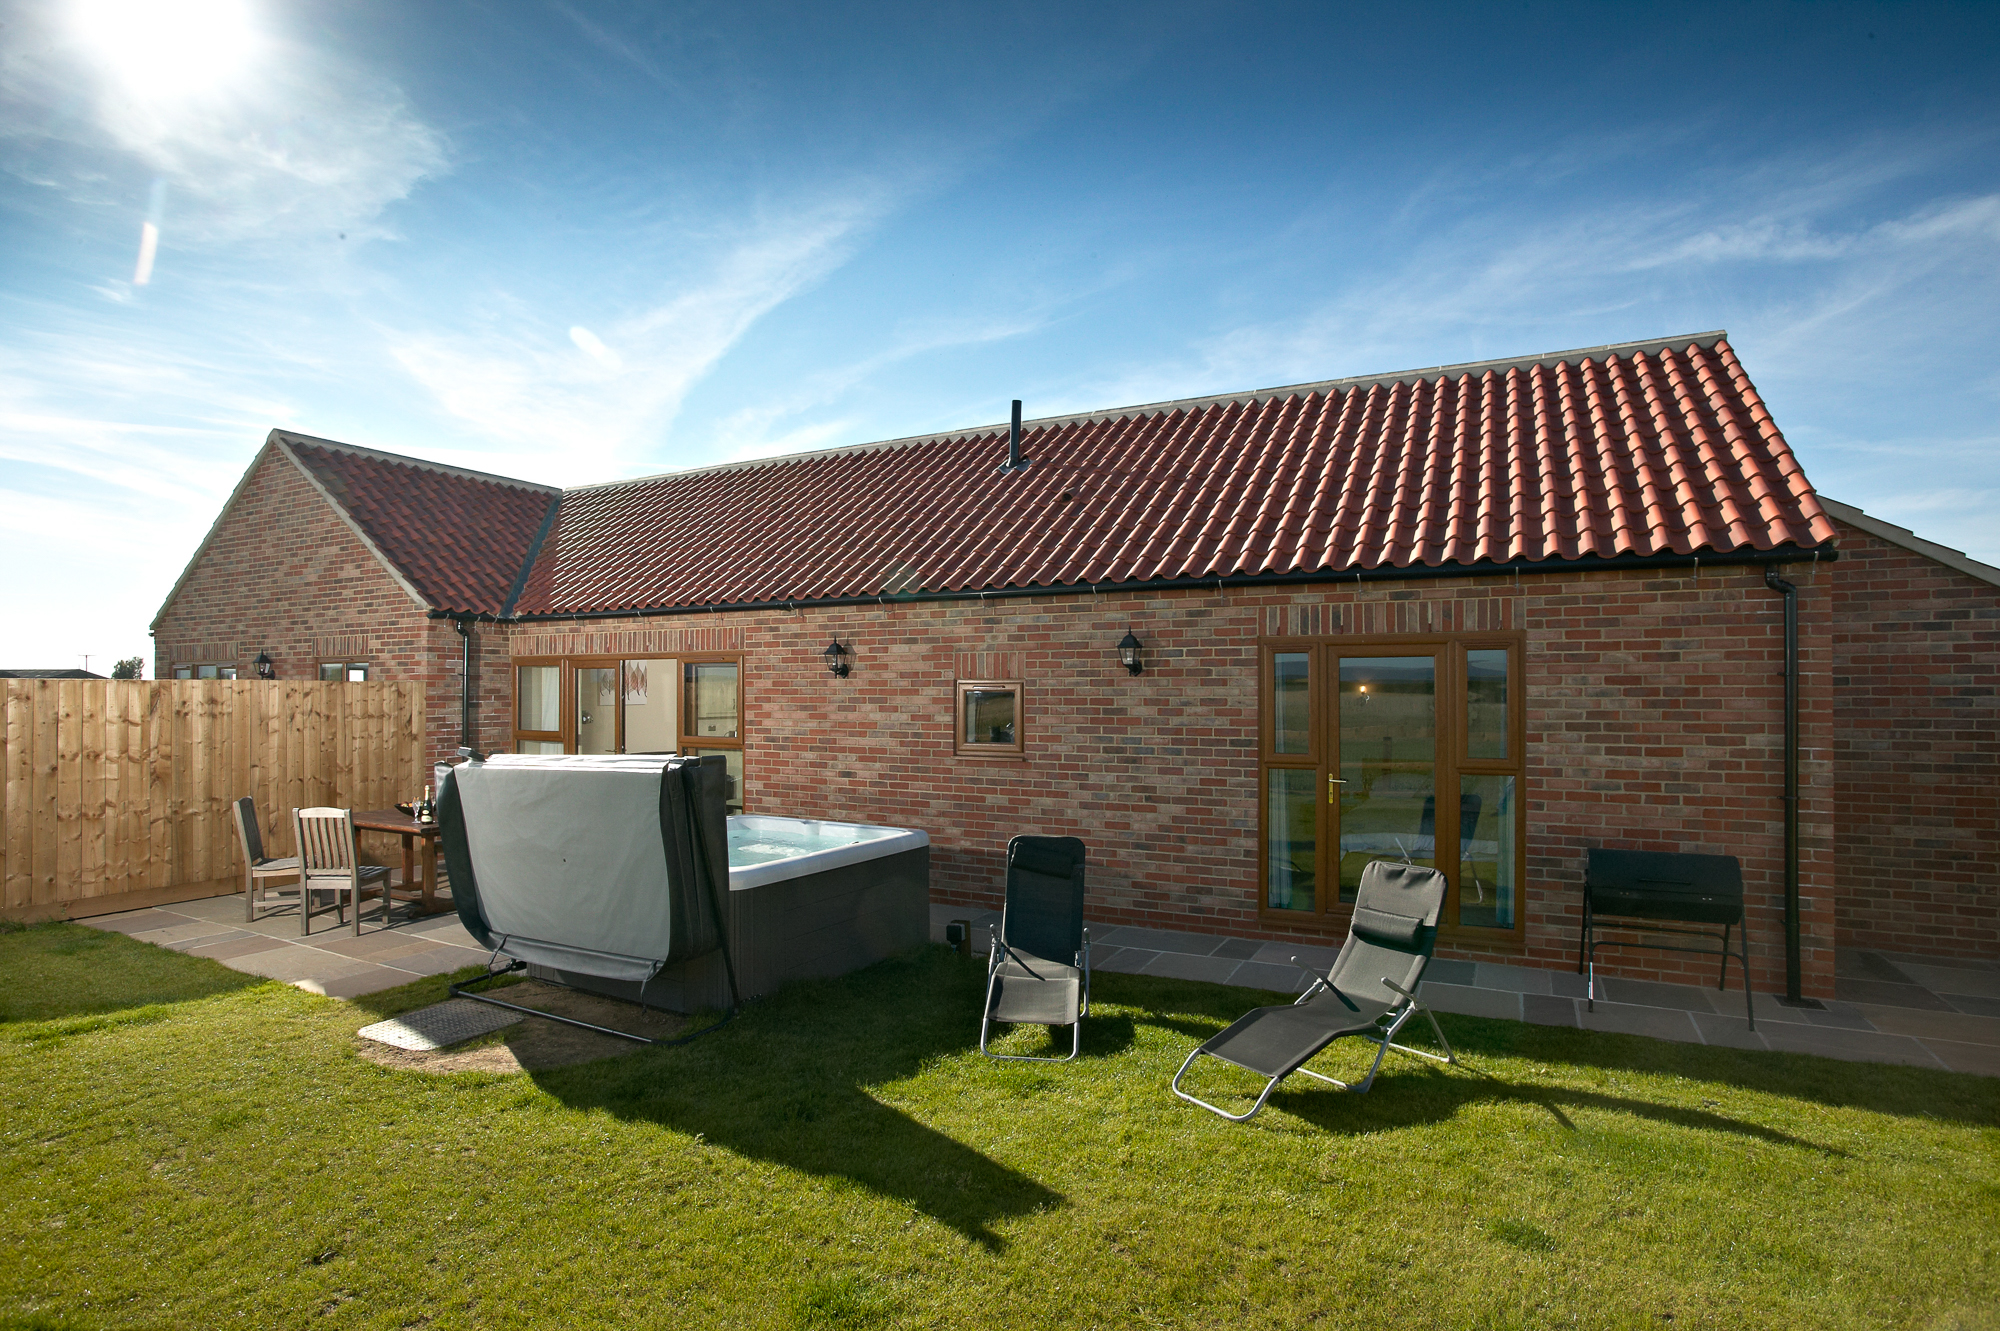 Contemporary yorkshire cottages hot tub acacia cottages for Cottages with sauna and hot tub